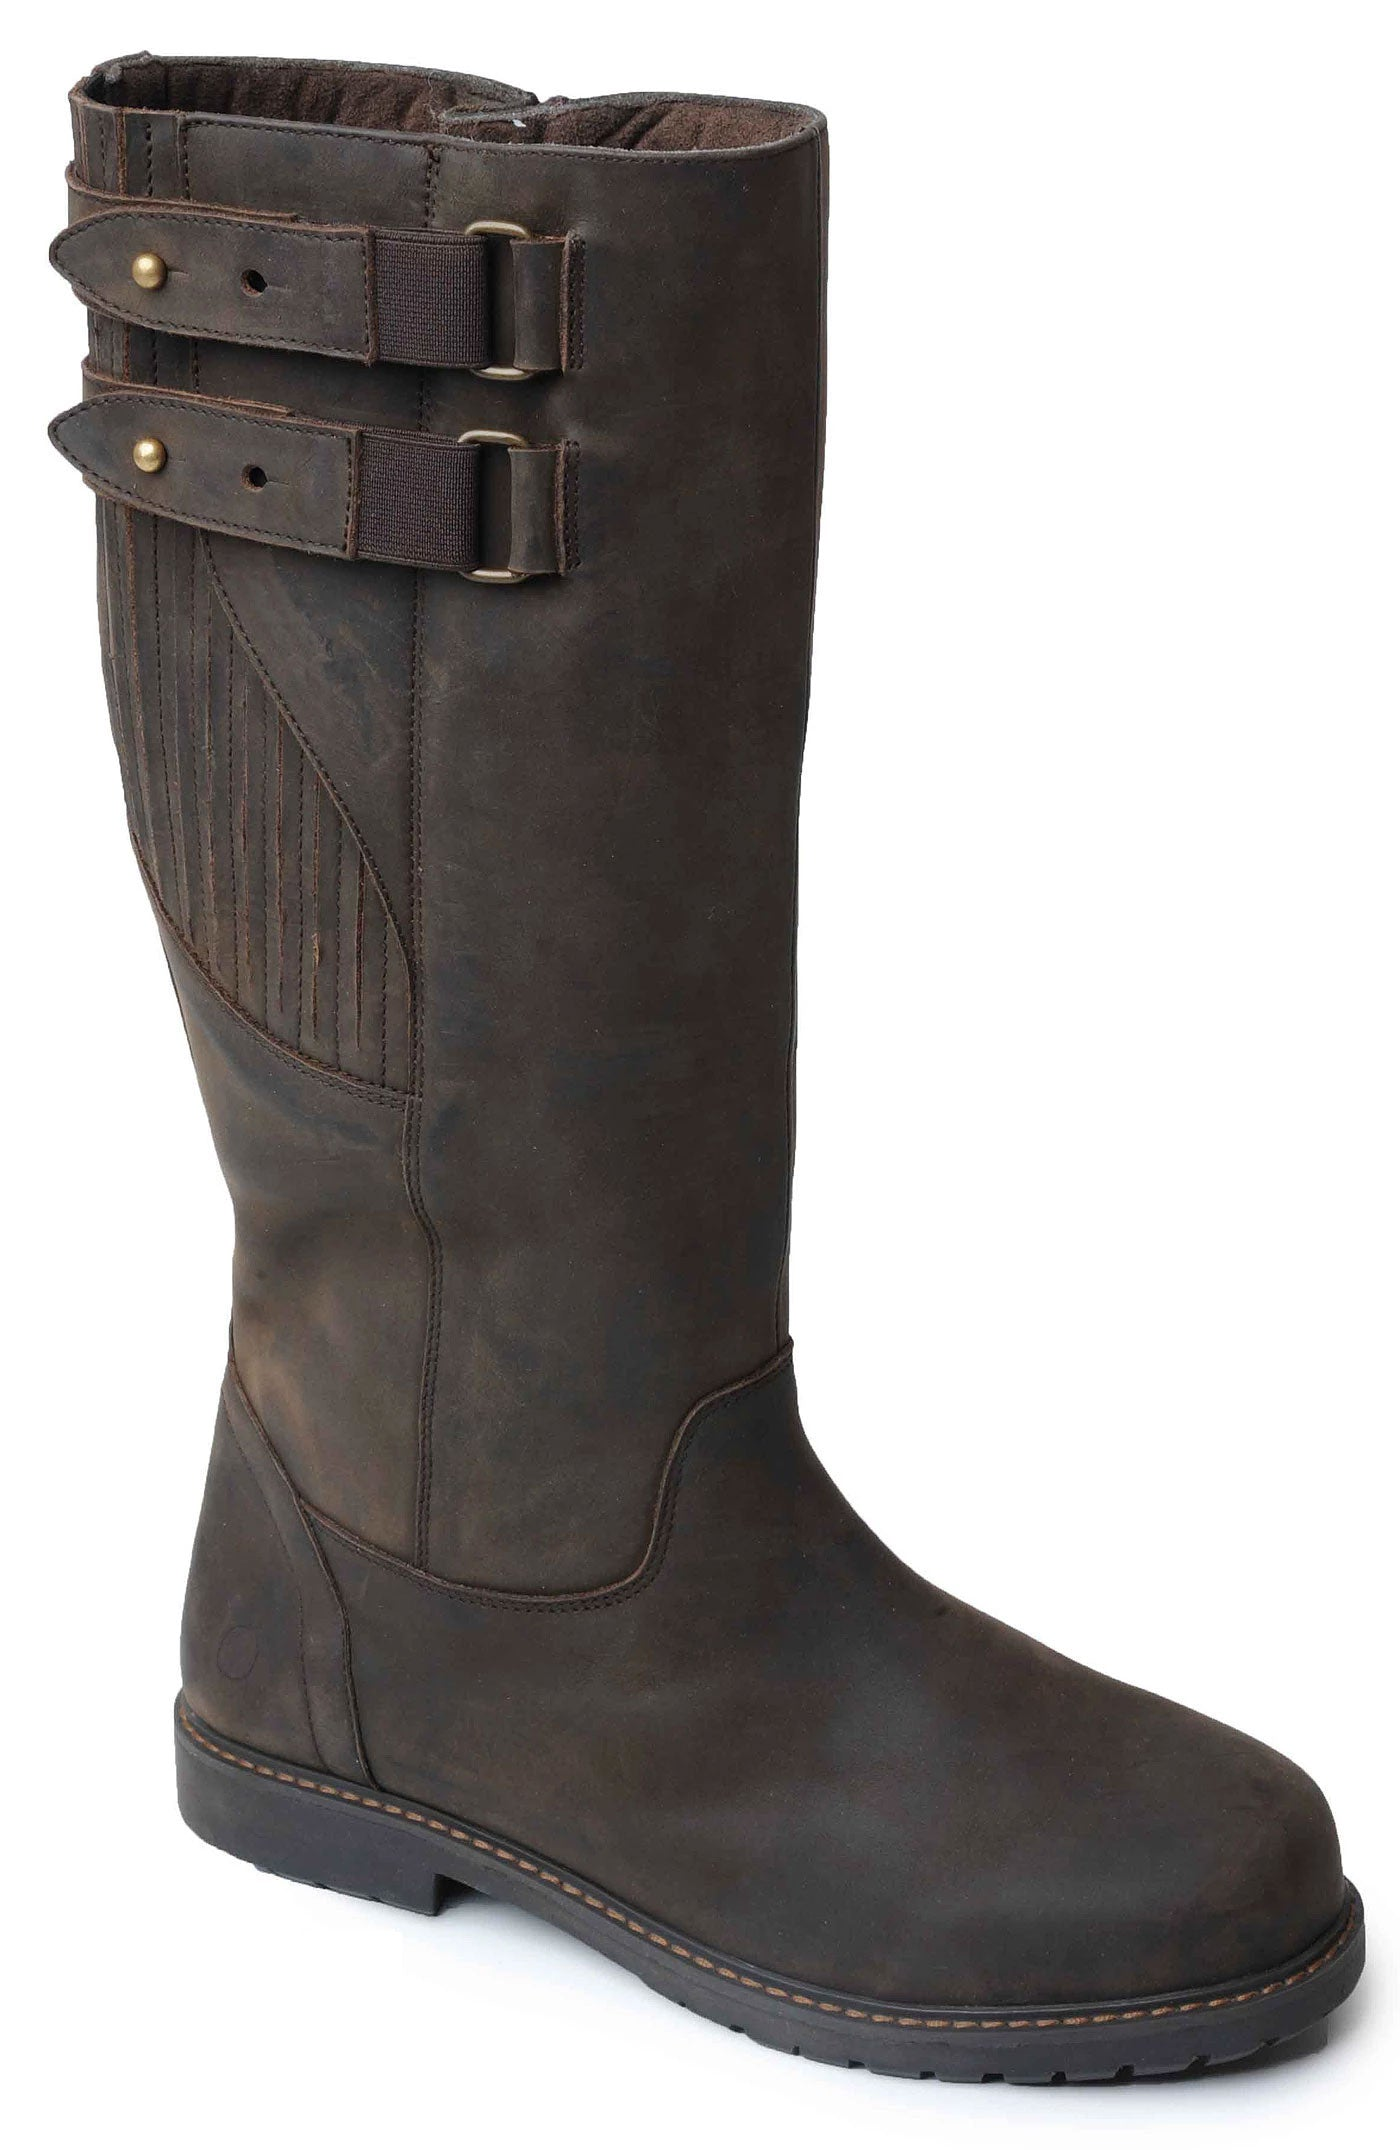 Woodland Men's Leather High Leg Country Boots